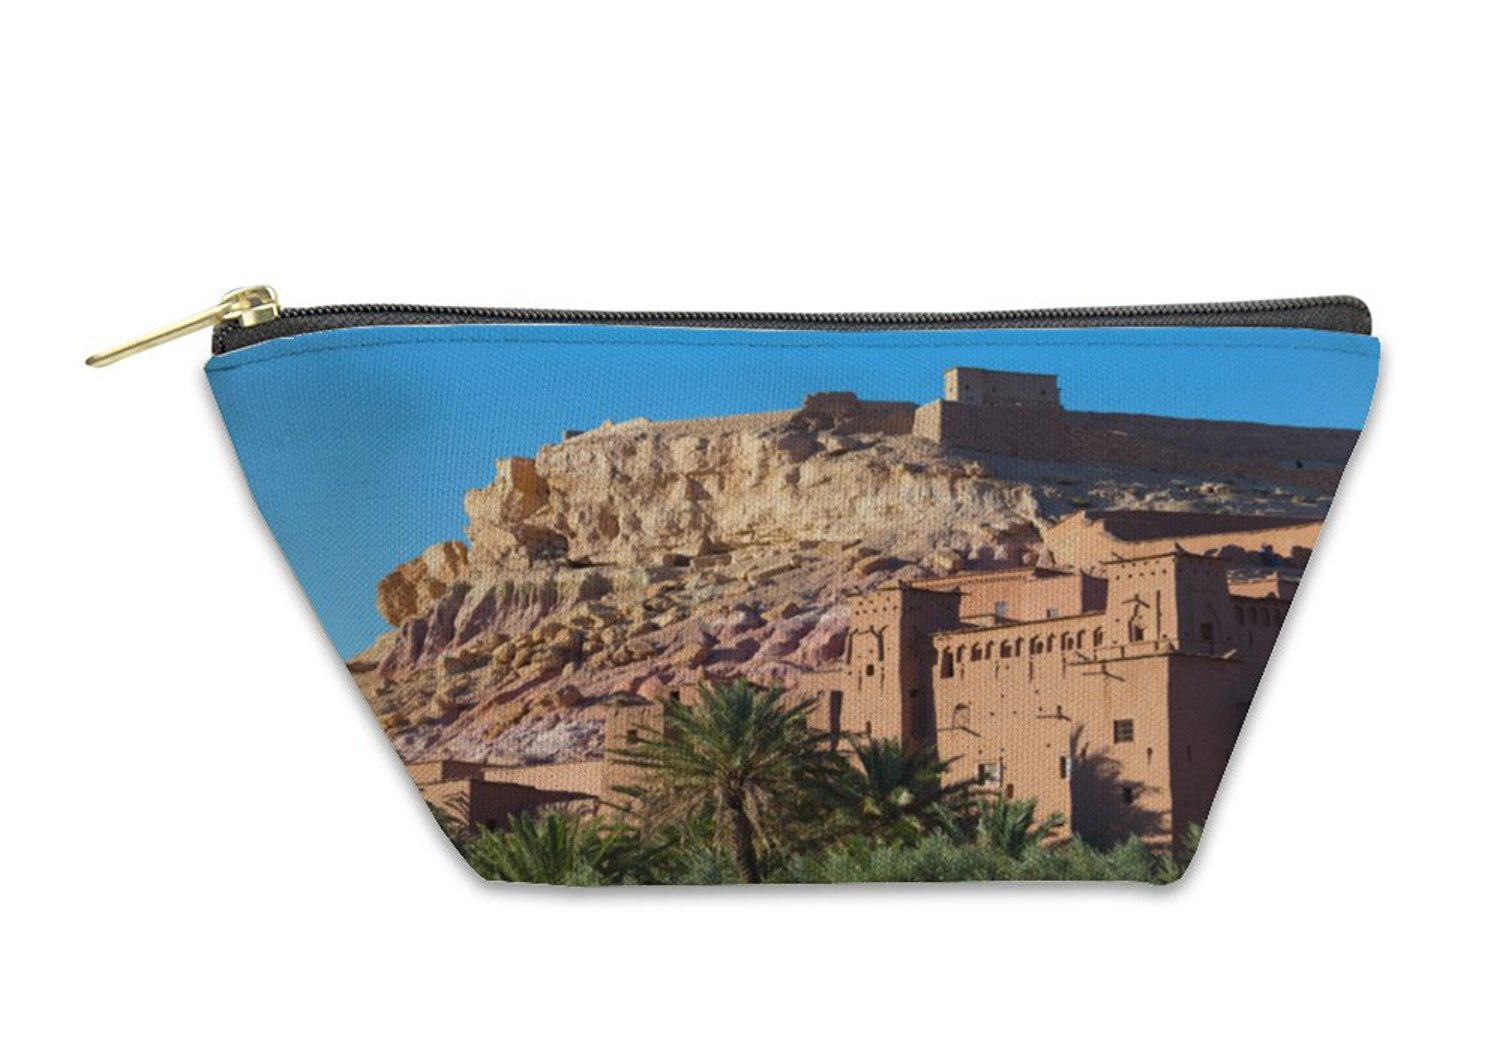 Gear New Accessory Zipper Pouch, Ancient City Of Ait Benhaddou In Morocco, 5995660GN